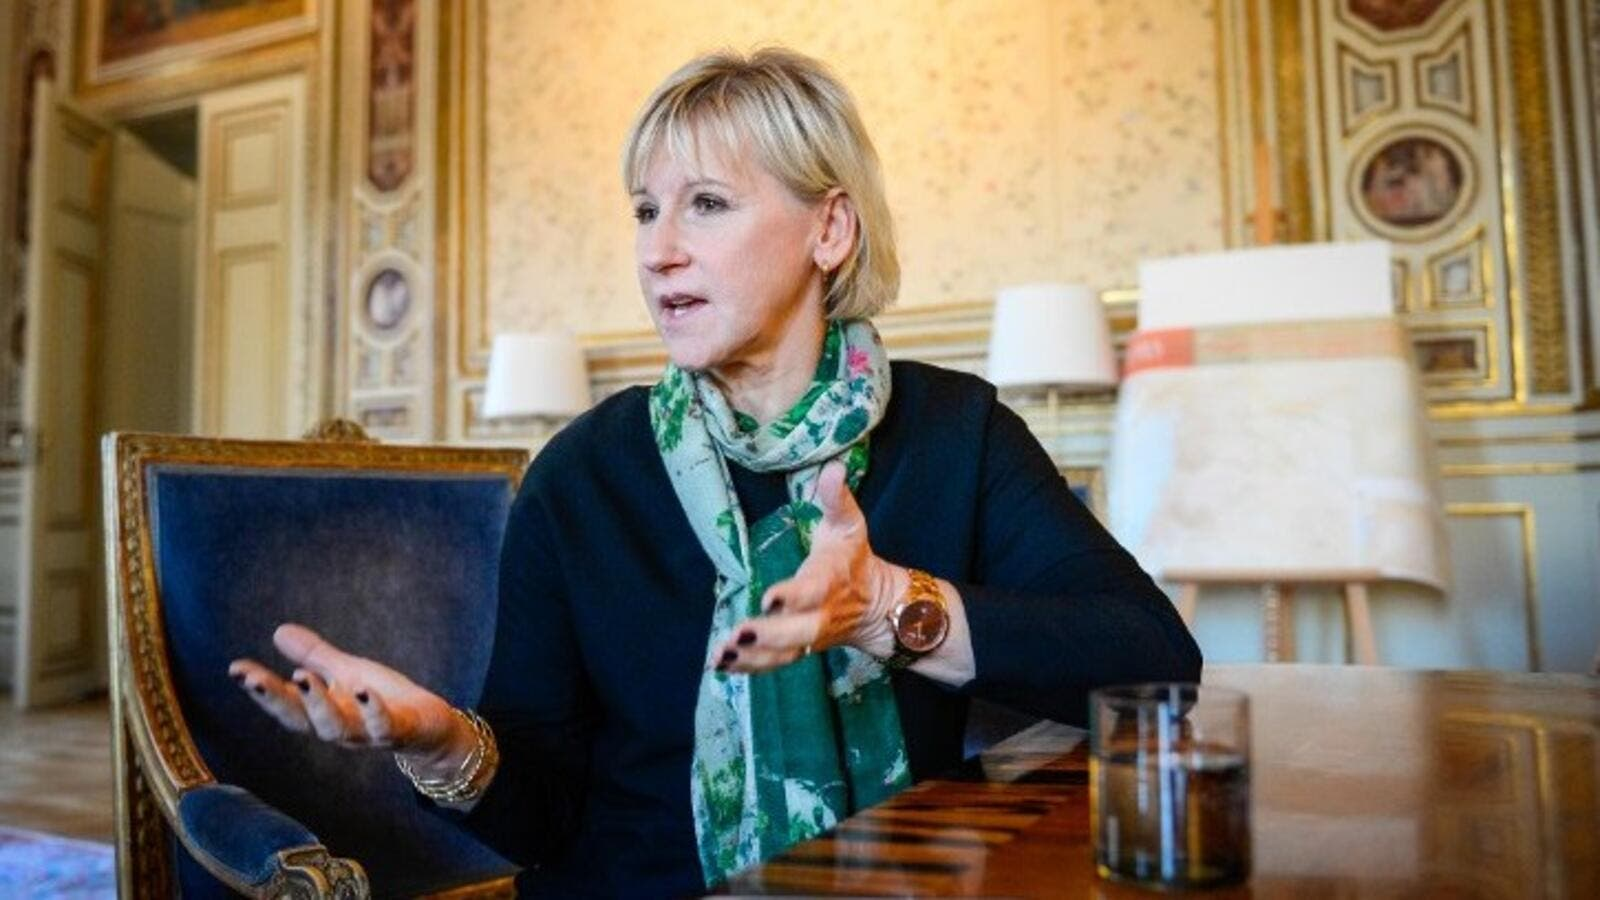 Margot Wallstrom, Sweden's minister of foreign affairs, in her office in Stockholm, October 31, 2014 (AFP/Jonathan Nackstrand)